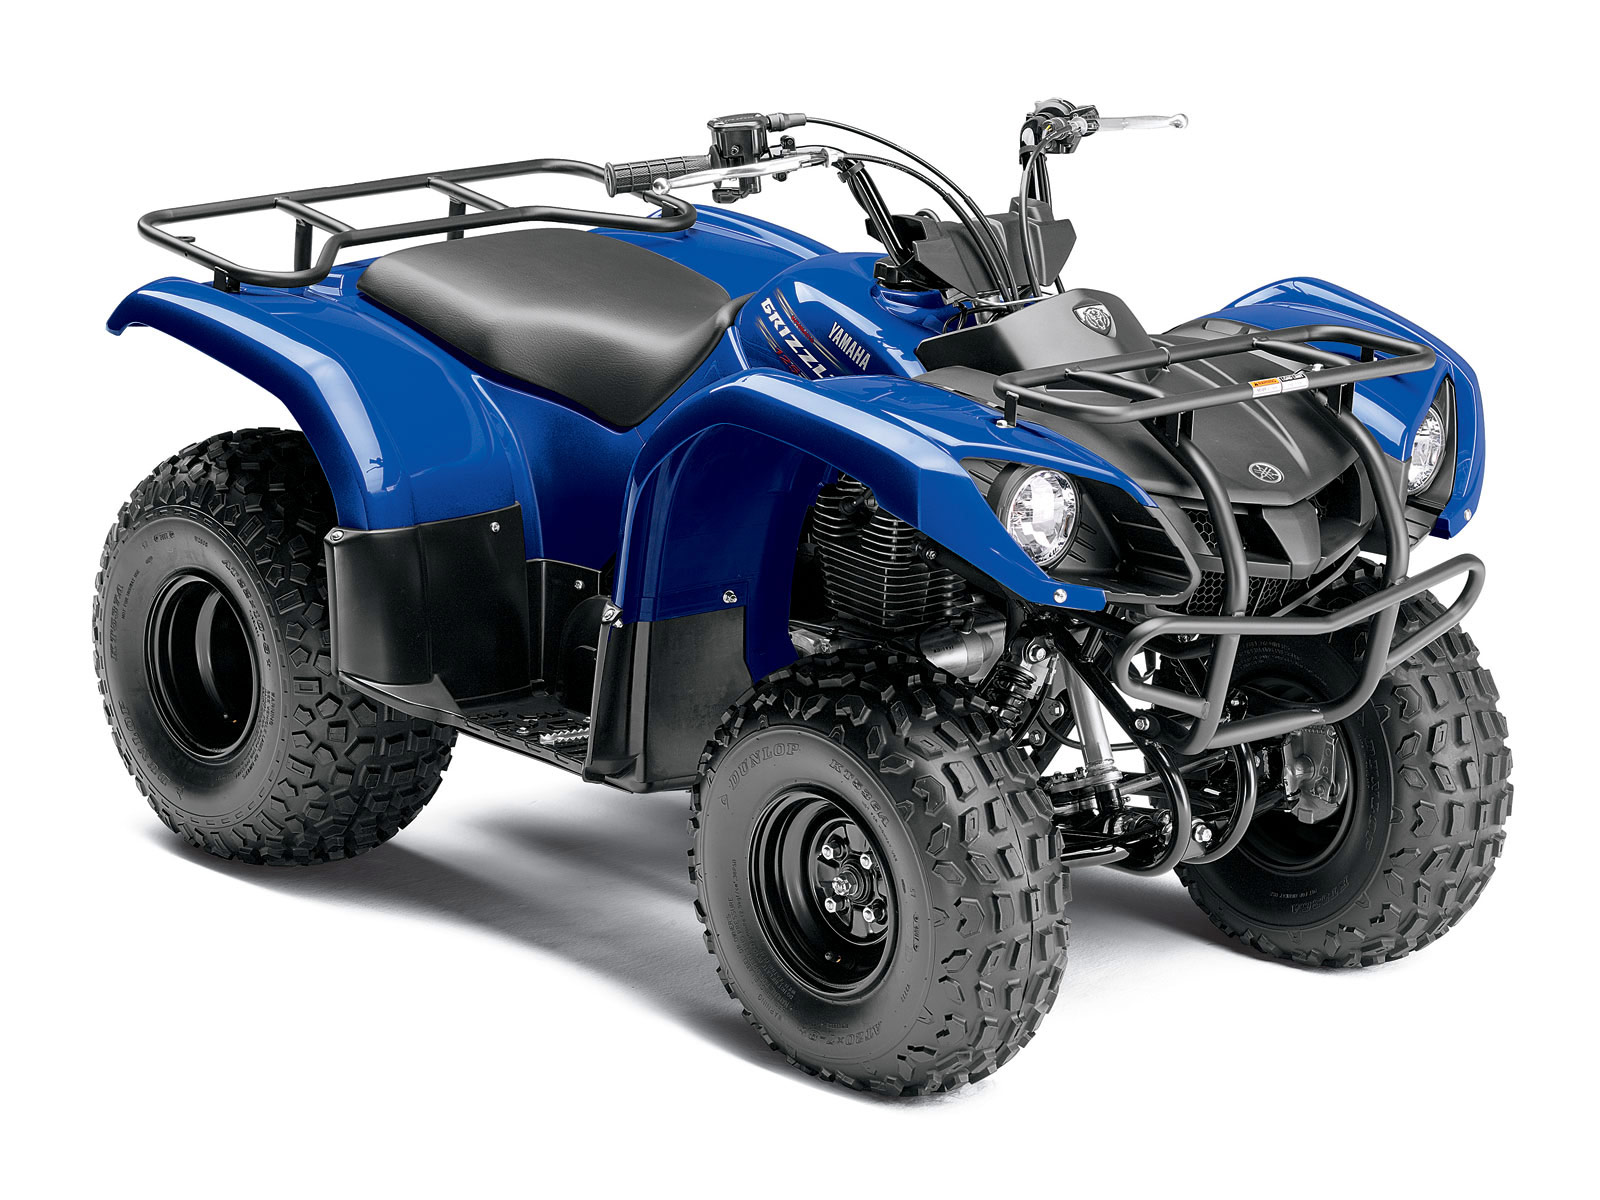 2011 yamaha grizzly 125 motorcycle insurance information